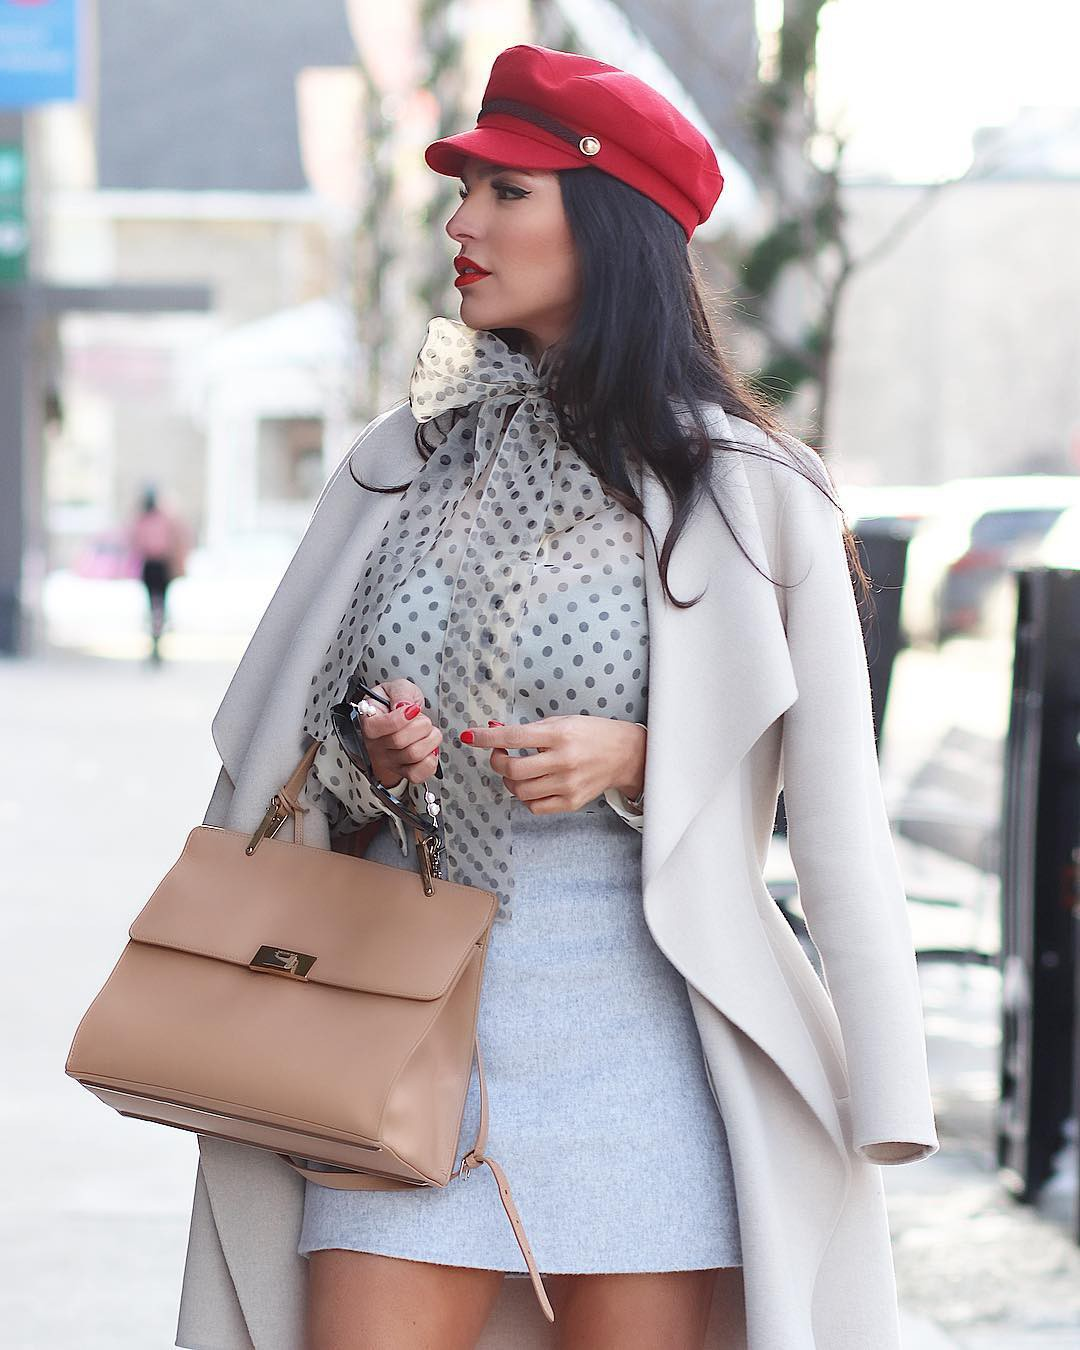 White and pink coat, apparel ideas, street fashion